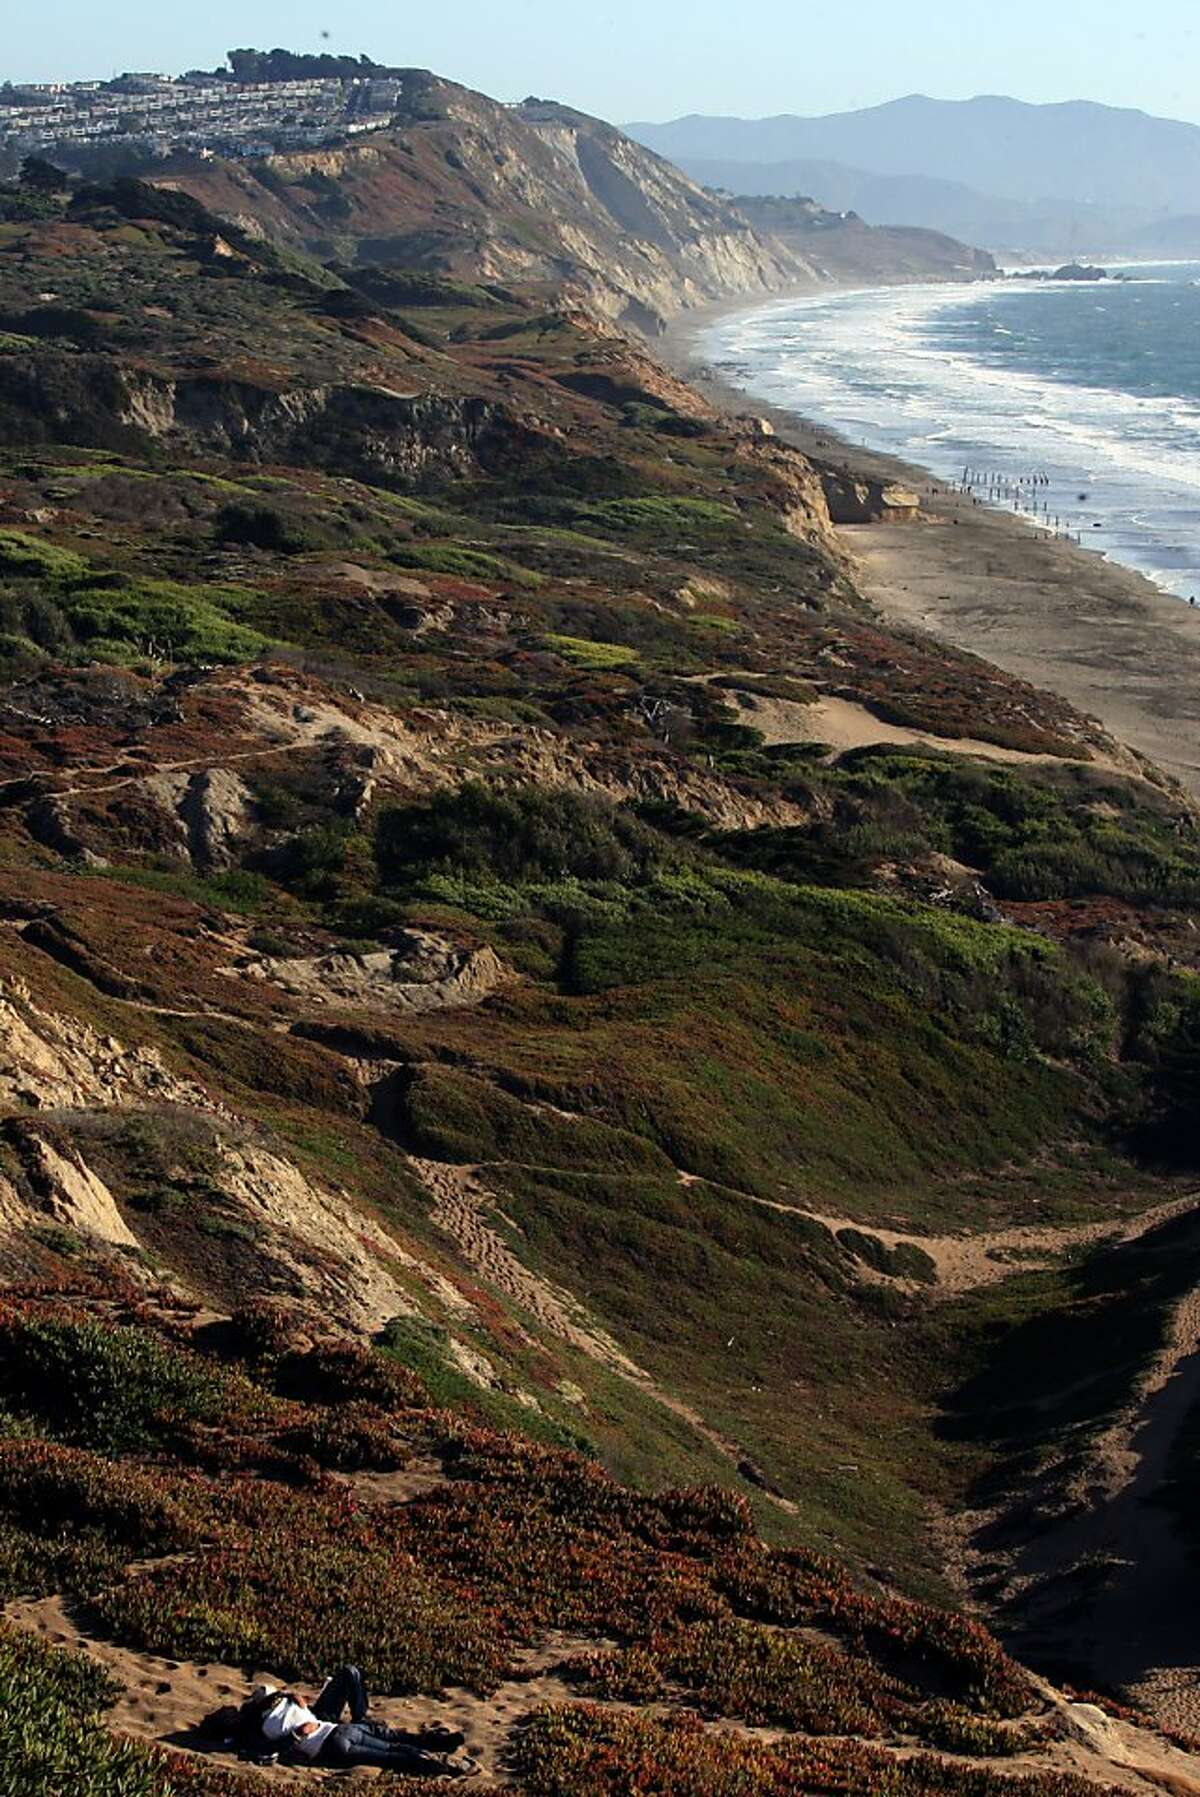 Looking at the dunes at Fort Funston in San Francisco, Calif., on Friday, October 10, 2008.